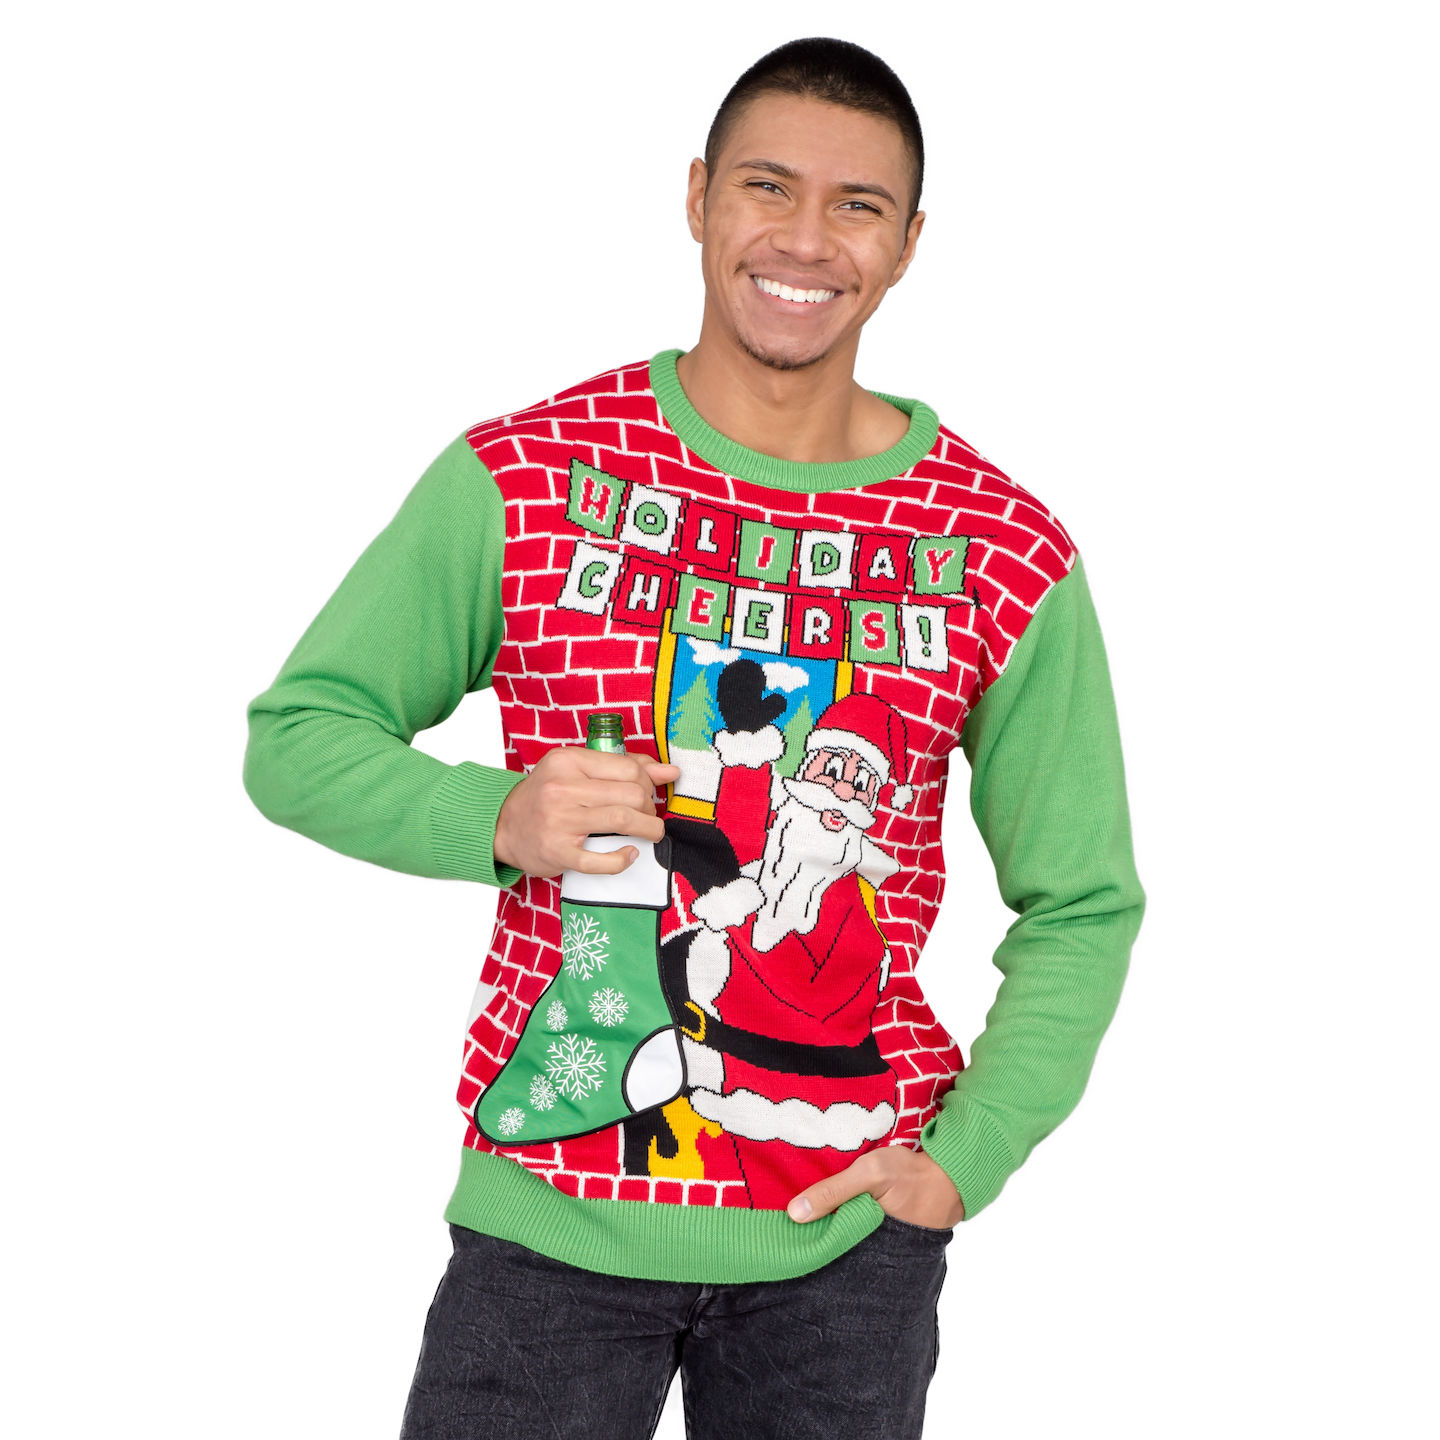 3x Ugly Christmas Sweater.Holiday Cheers Santa With Beer Holder Socks Adult Ugly Christmas Sweater 3x Large